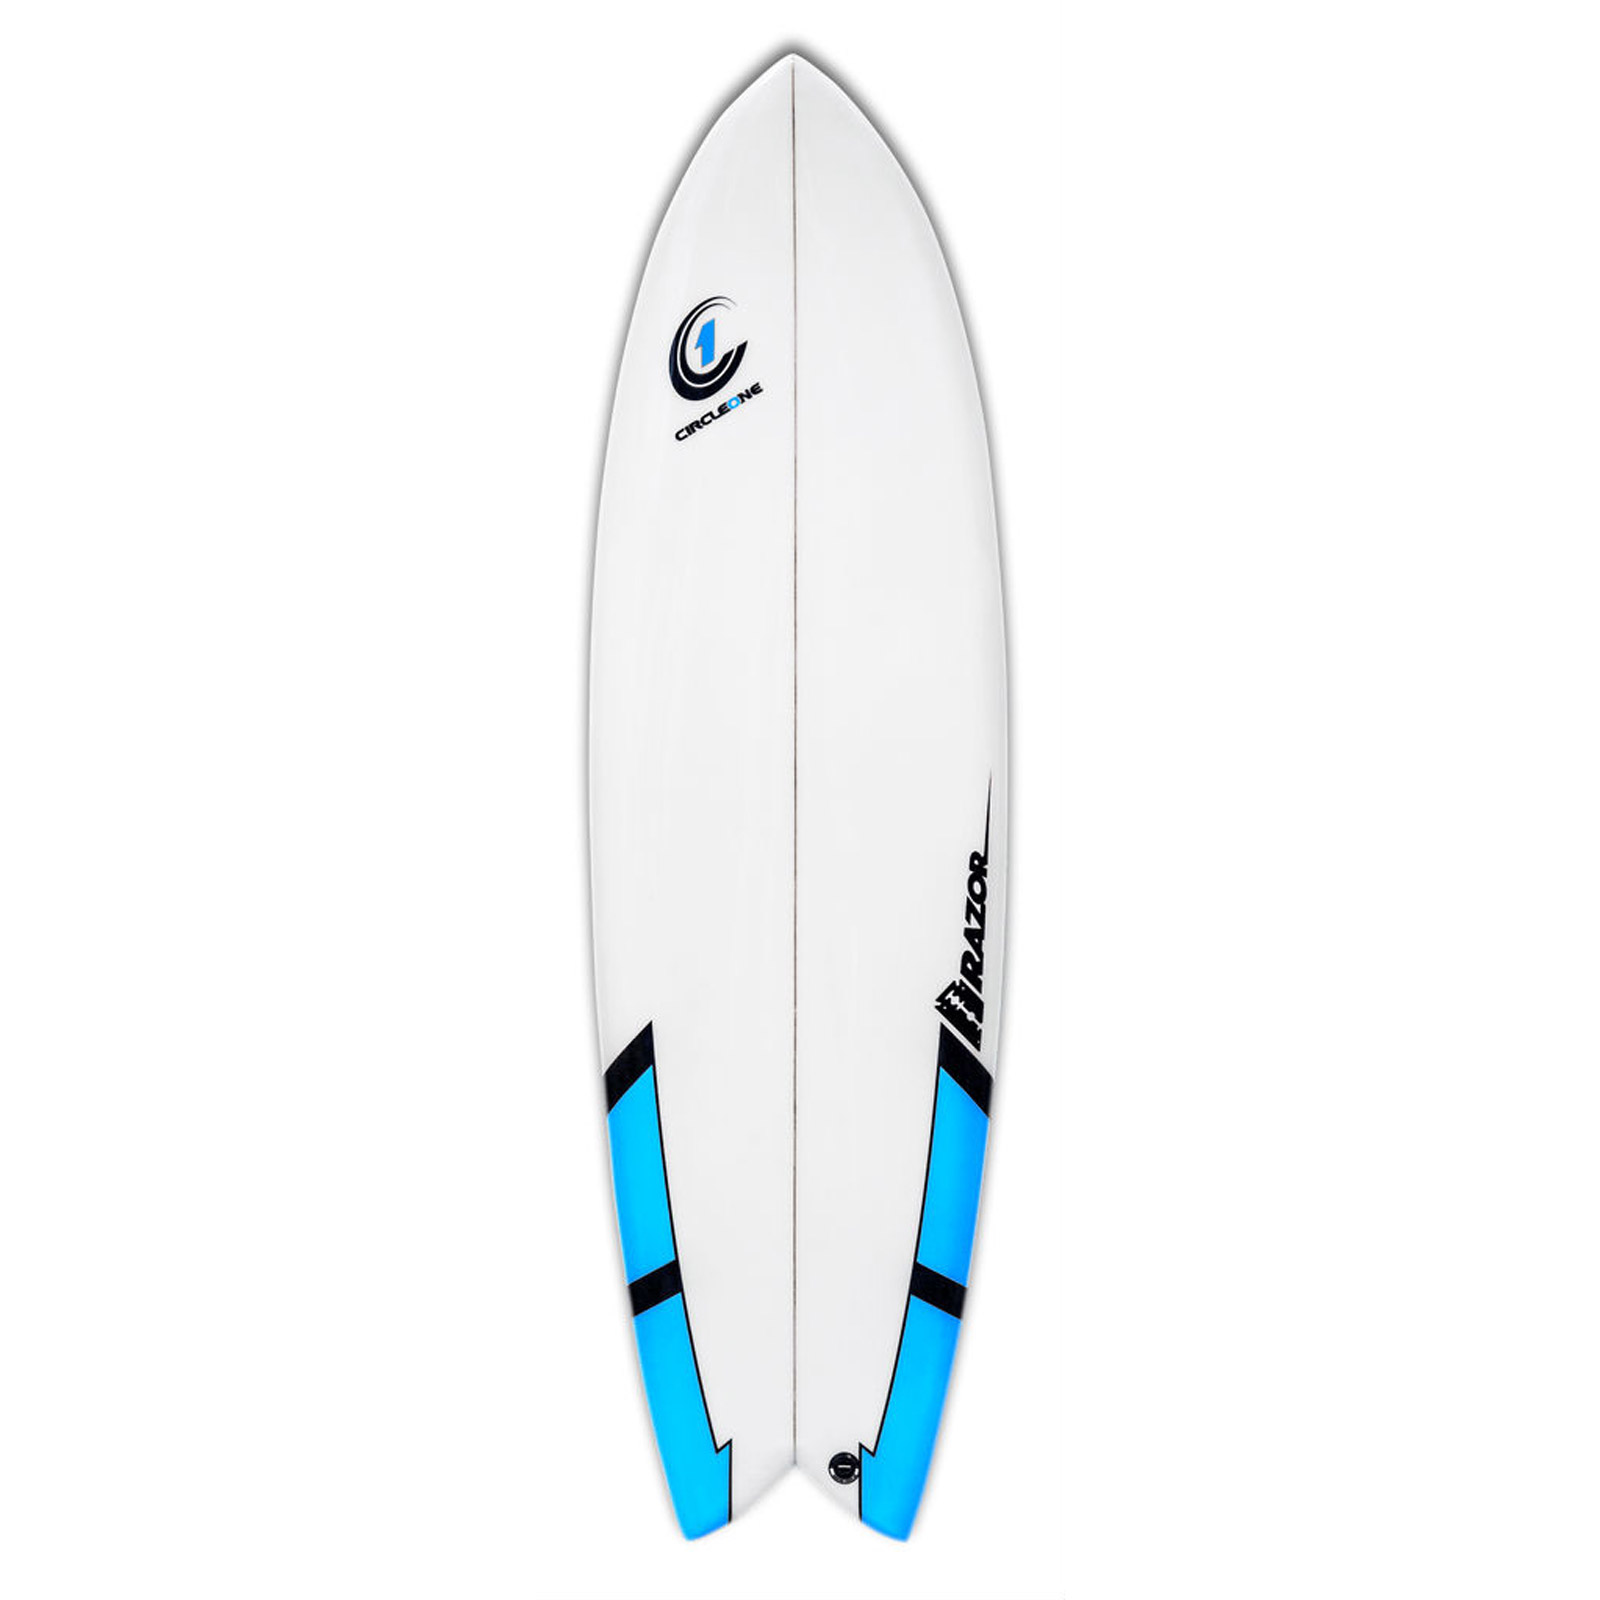 6ft 3inch Razor Surfboard - Fish Tail Shortboard - Matt Finish